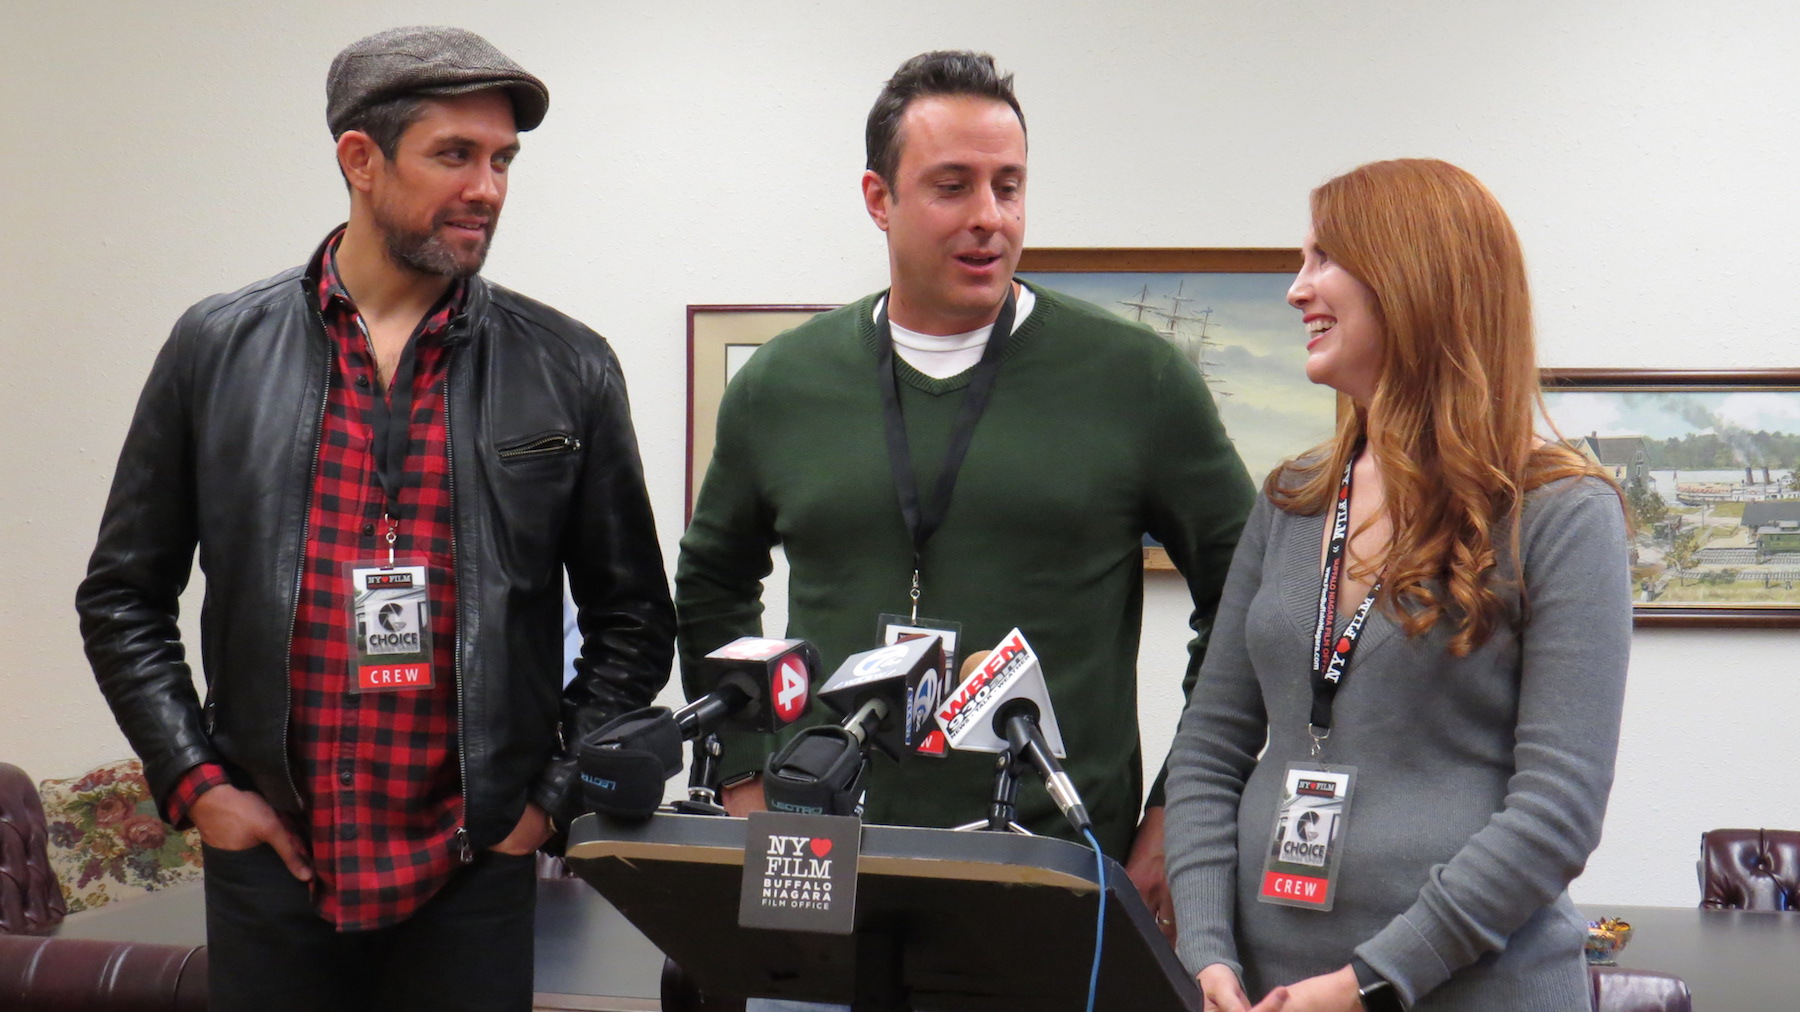 Pictured, from left, are `Morning Sun` actor Neal Bledsoe, director Tony Glazer and producer Summer Crockett Moore.